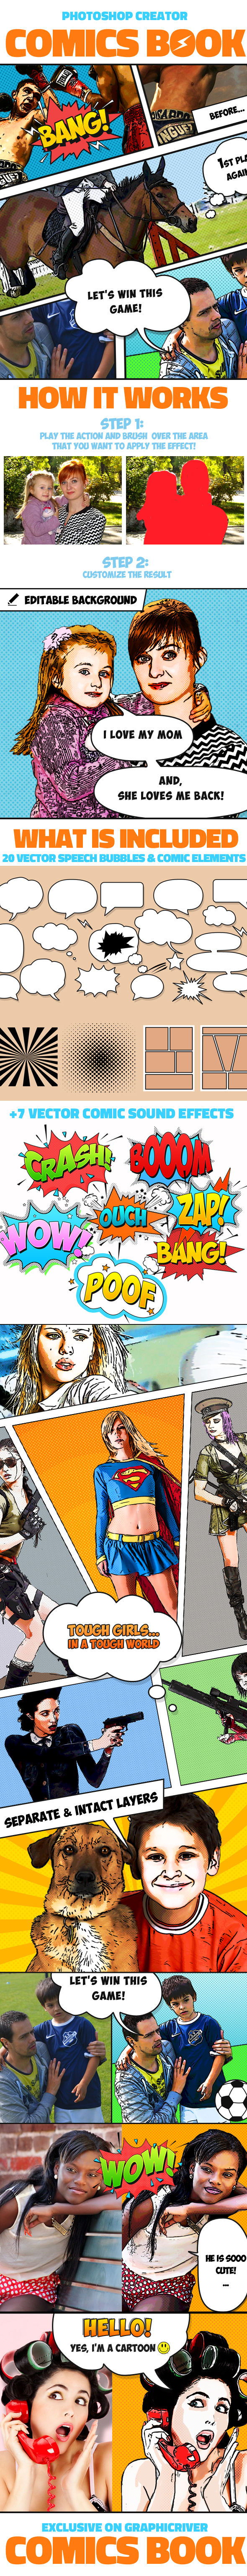 Comics Book Photoshop Creator - Photo Effects Actions